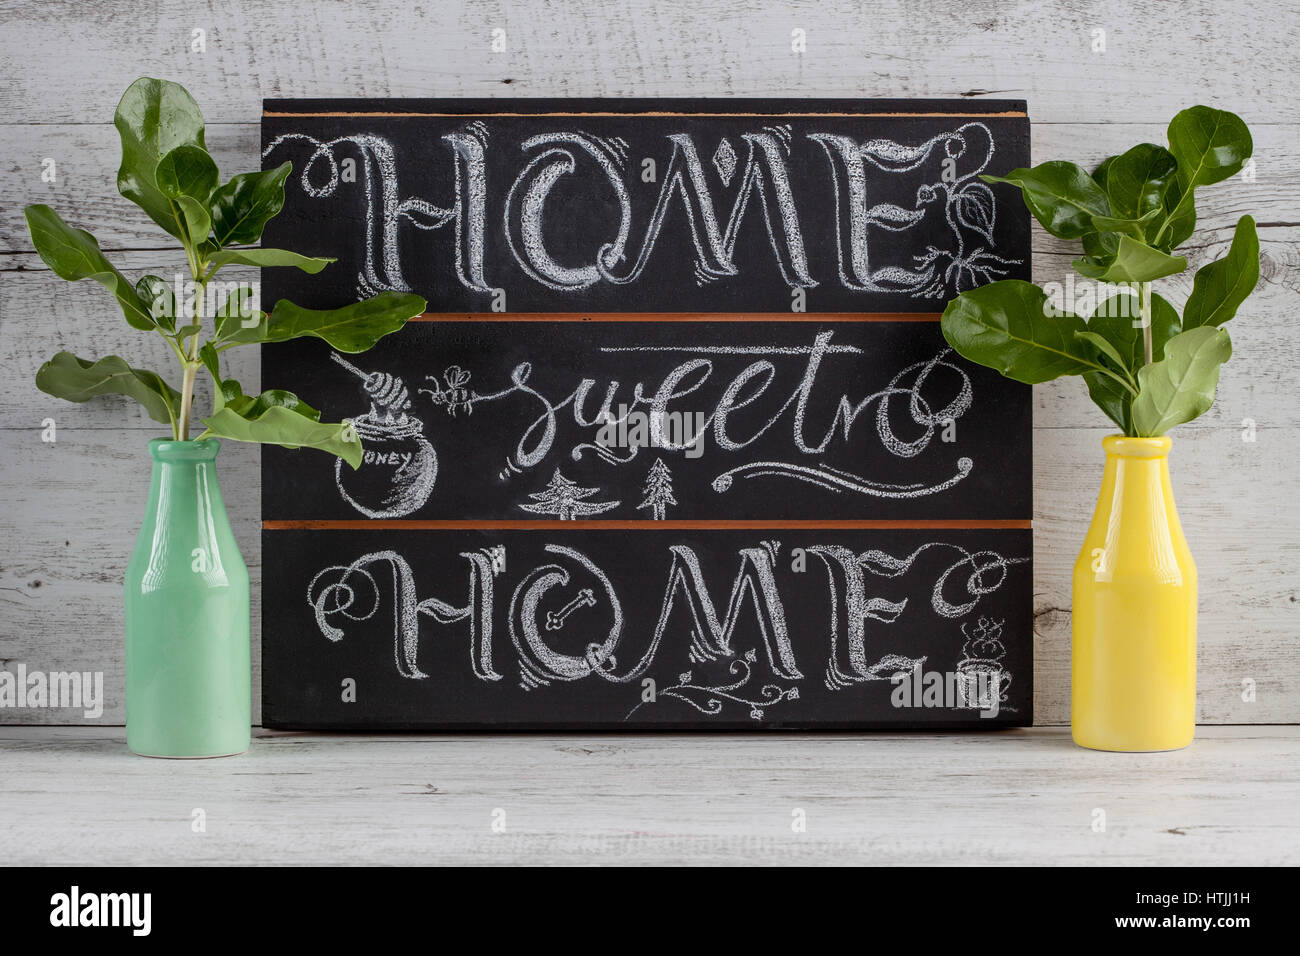 Hand lettering calligraphy sign drawn with chalk. Lettered quote 'Home sweet home' to use as decoration - Stock Image